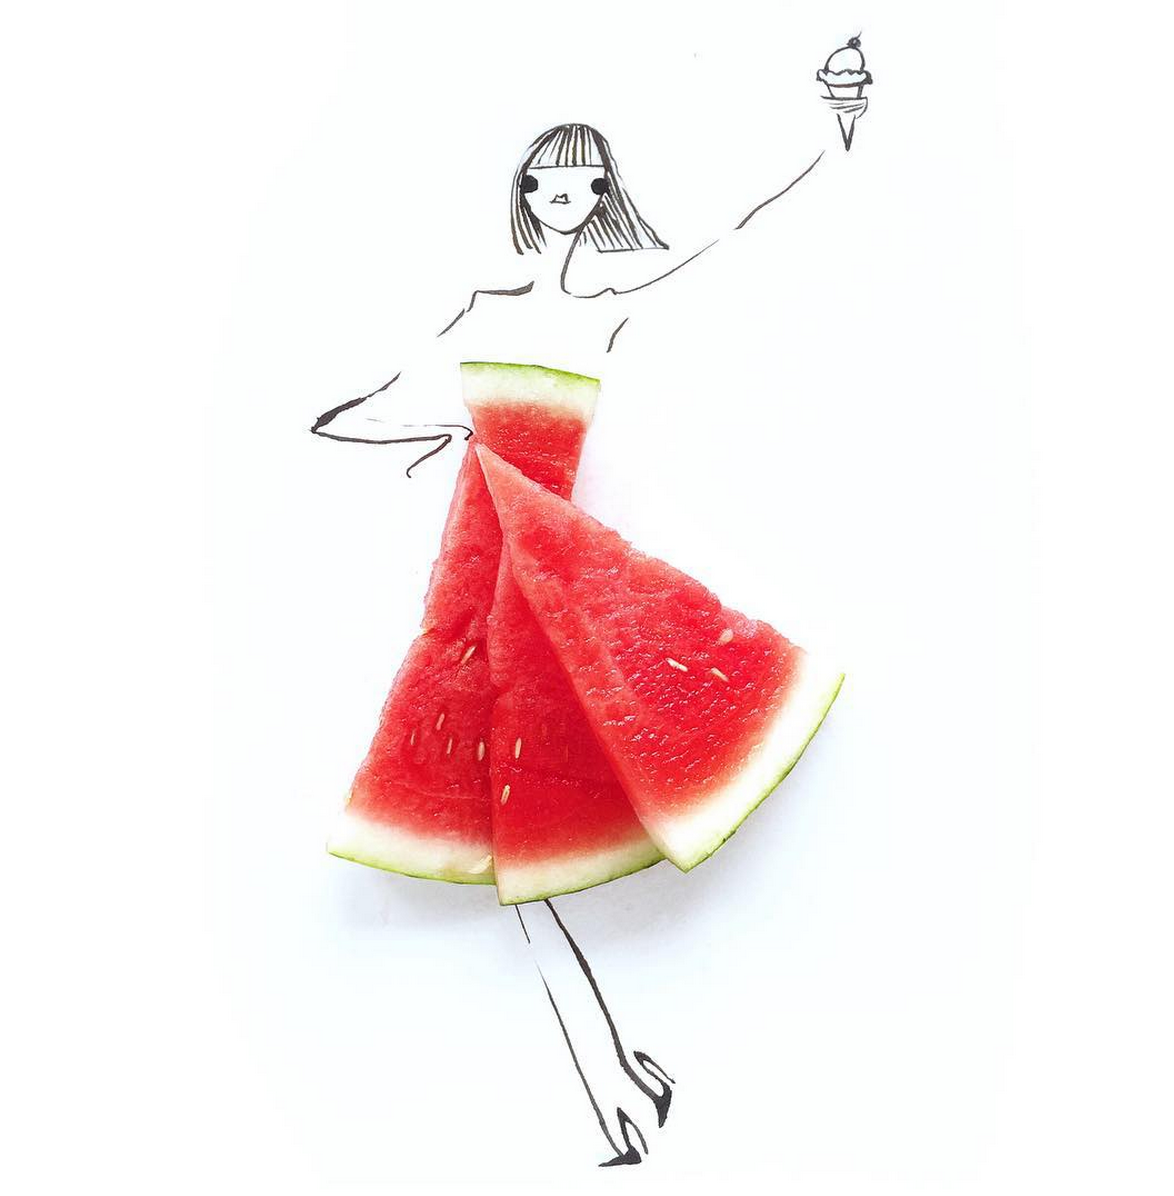 Food Fashion Sketches - Watermelon Dress - Summer Ice Cream